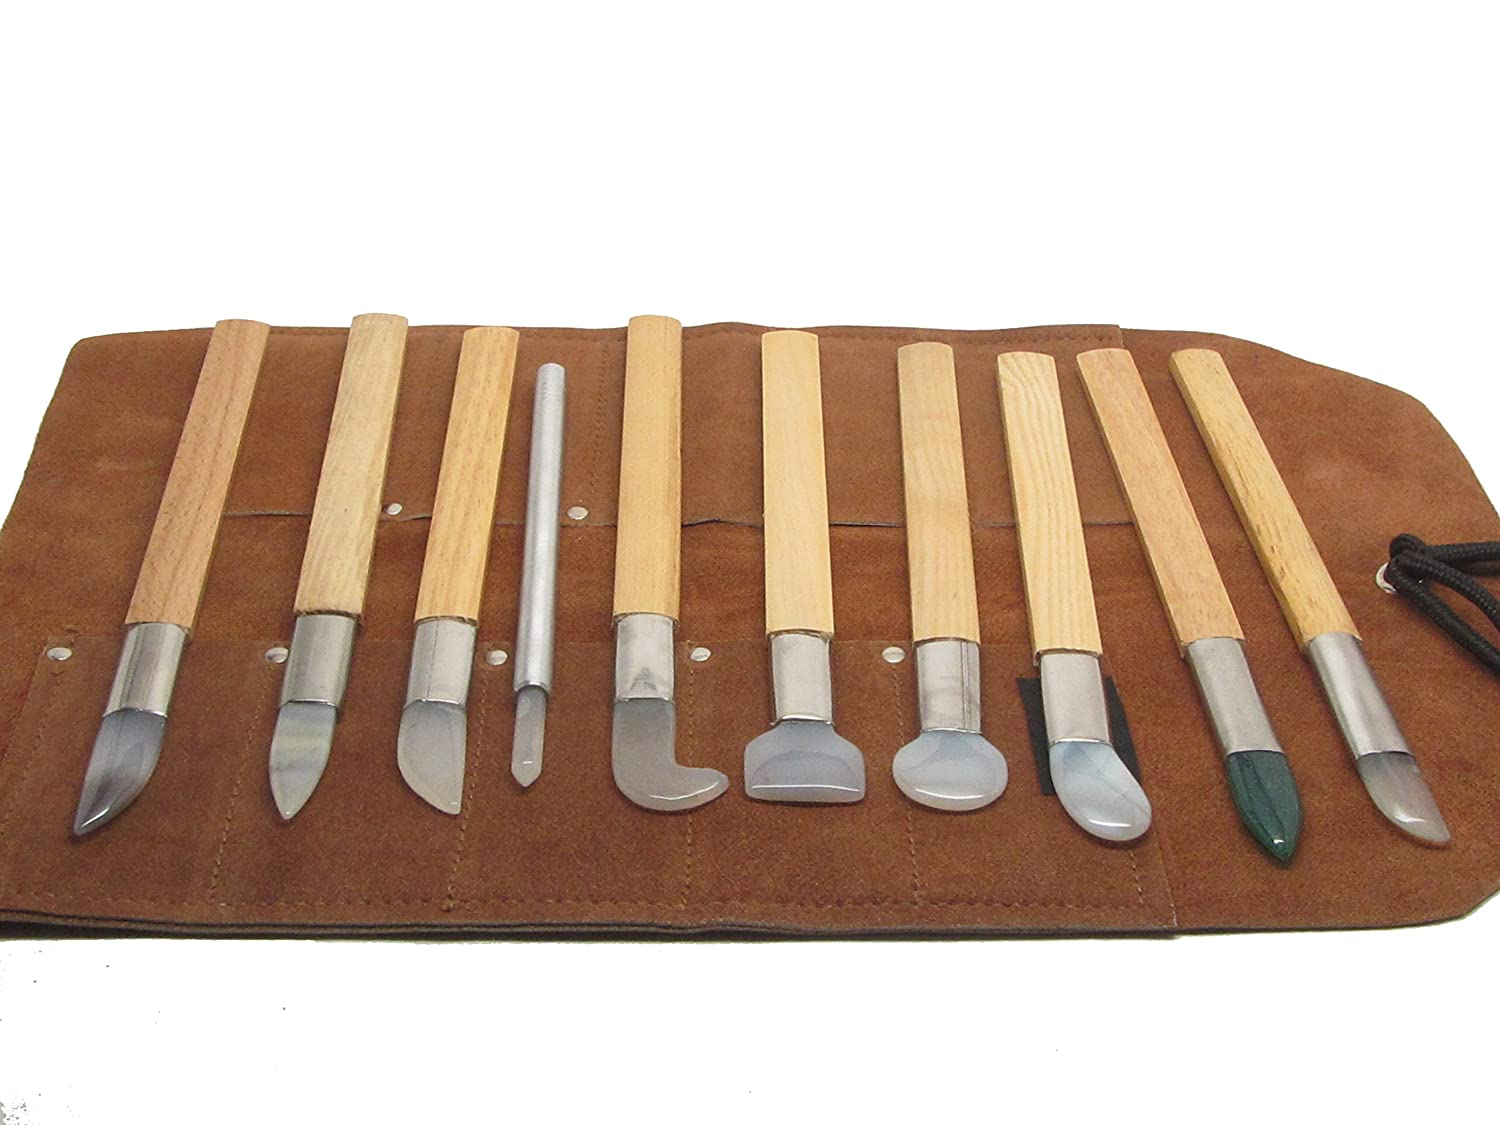 Agate Burnishers - 10 pc Set - Includes Leather Tool Roll - Bezel Gold Silver Leaf Tools for Bookbinding, Jewelry, Metal, Clay, Keeum-Boo UJ Ramelson Co